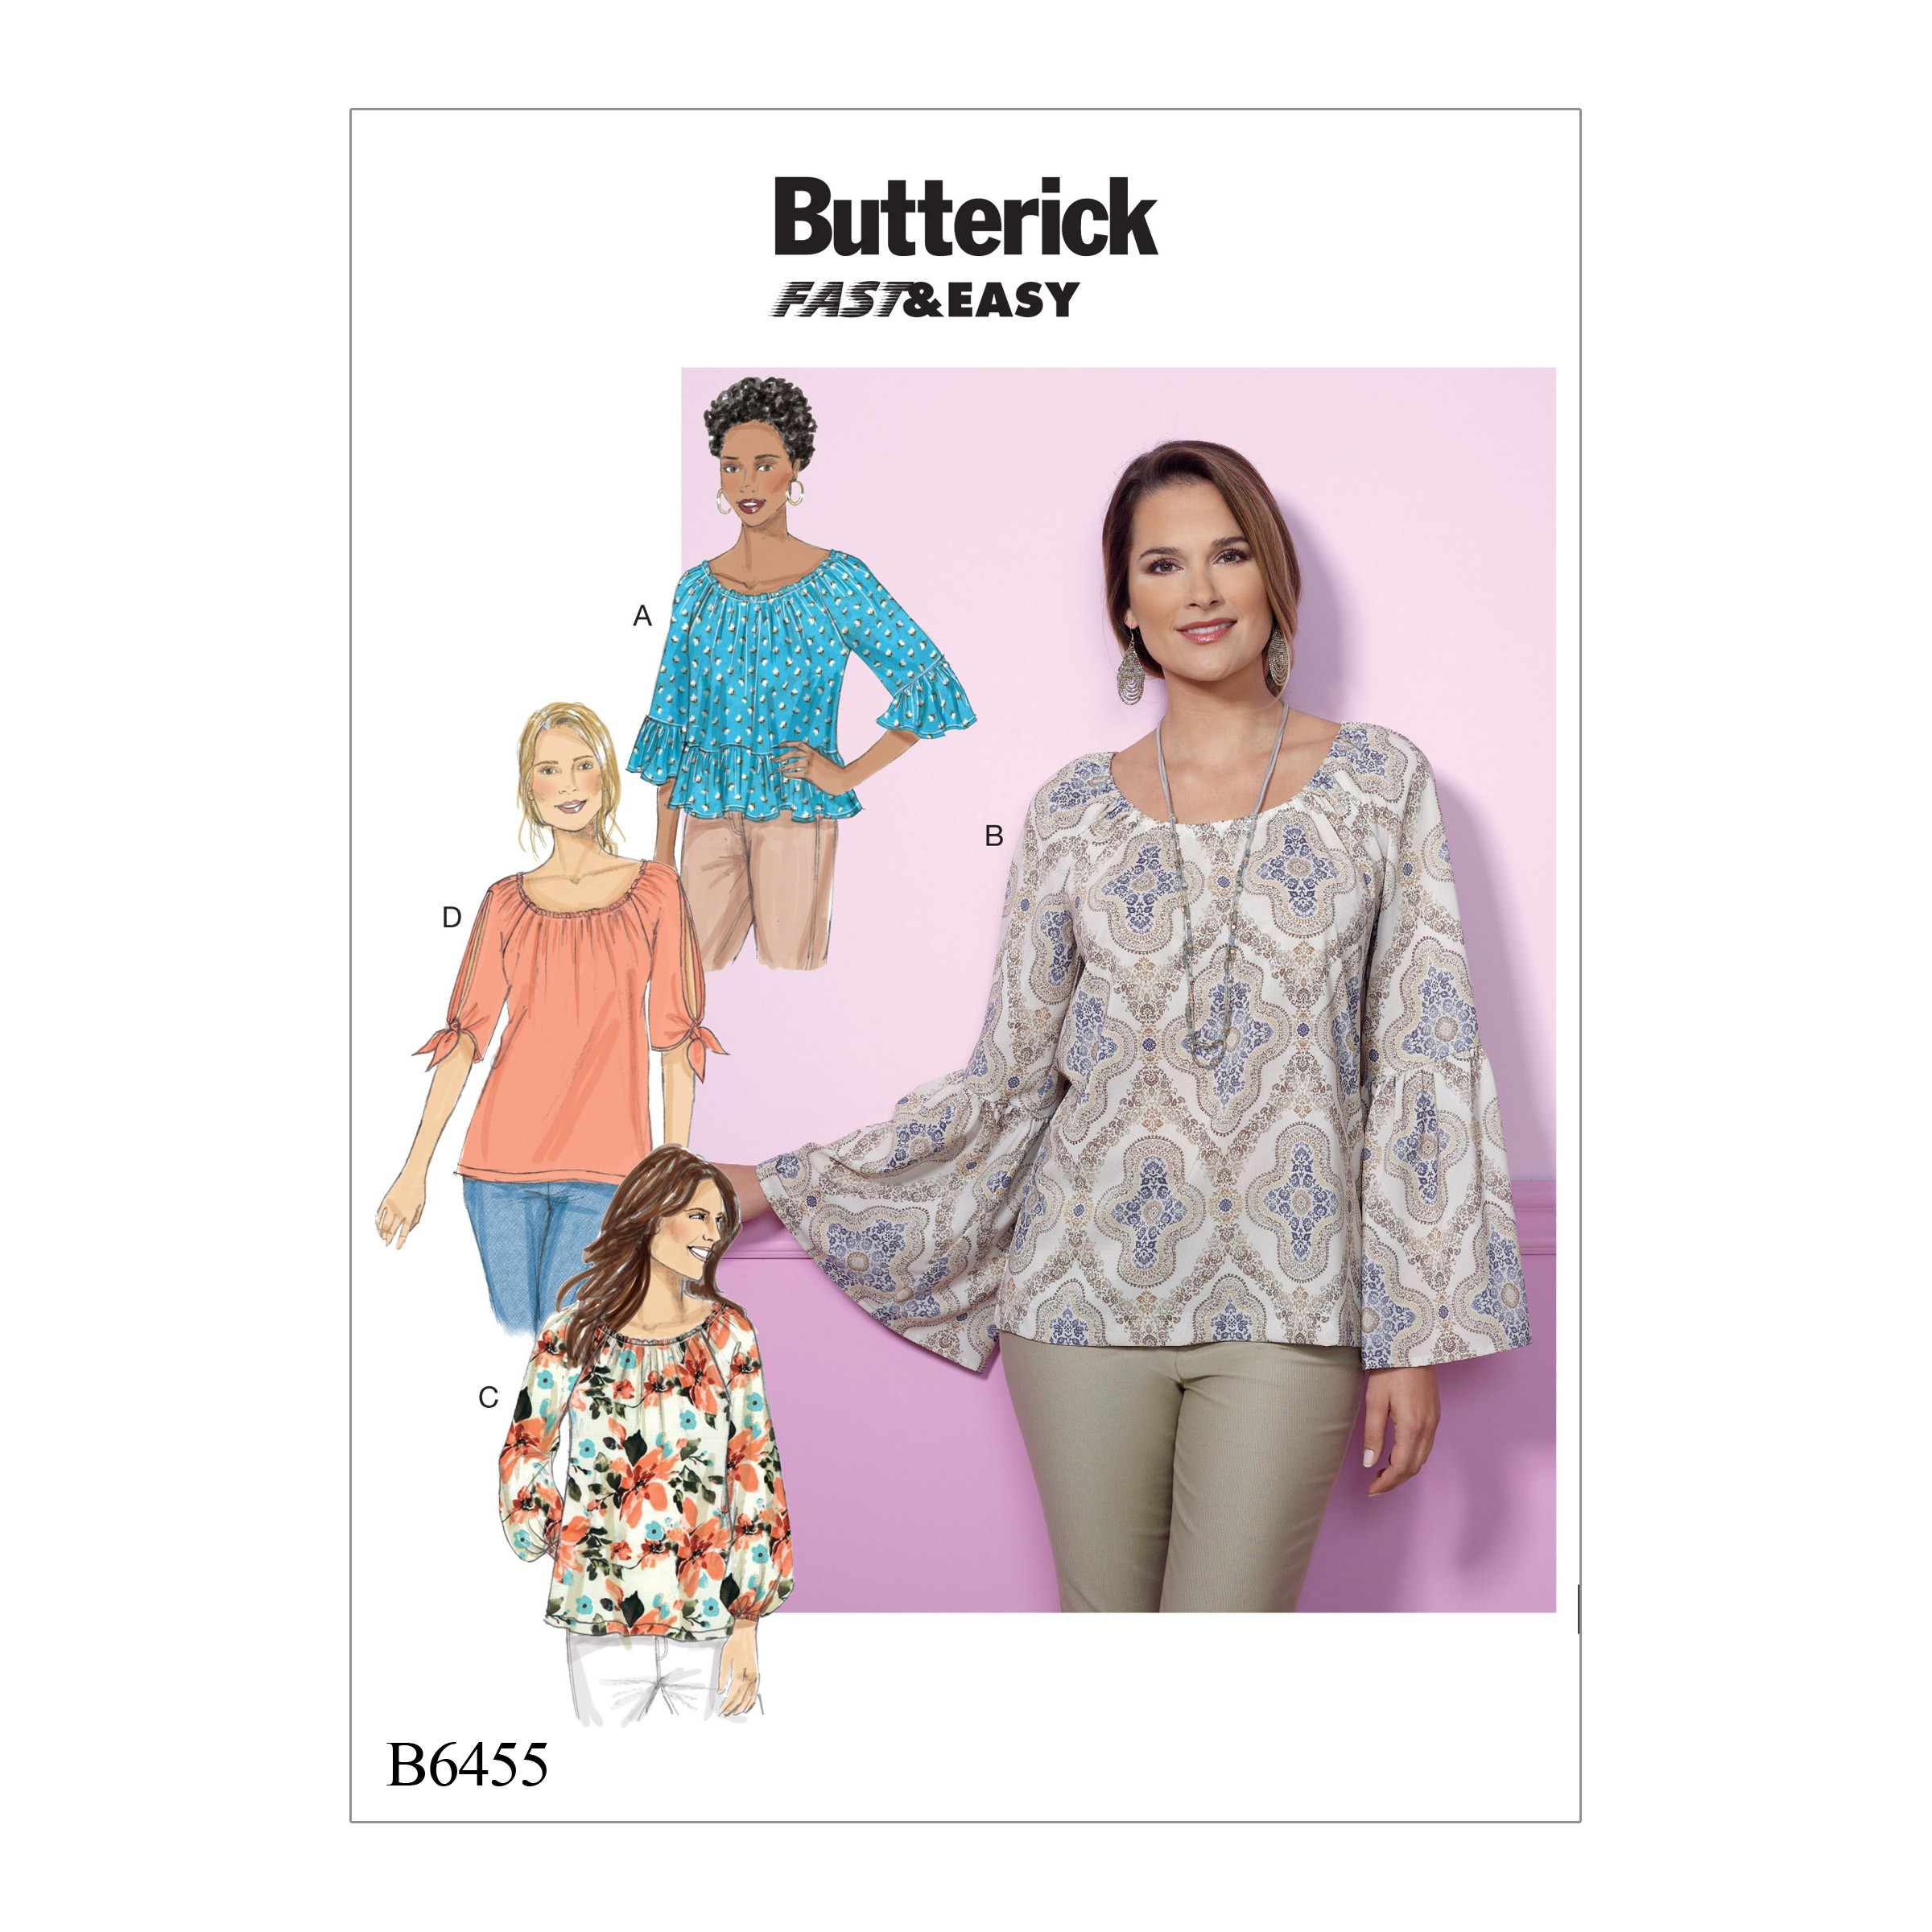 Butterick Sewing Pattern 6455 Misses' Gathered Raglan Sleeve Top